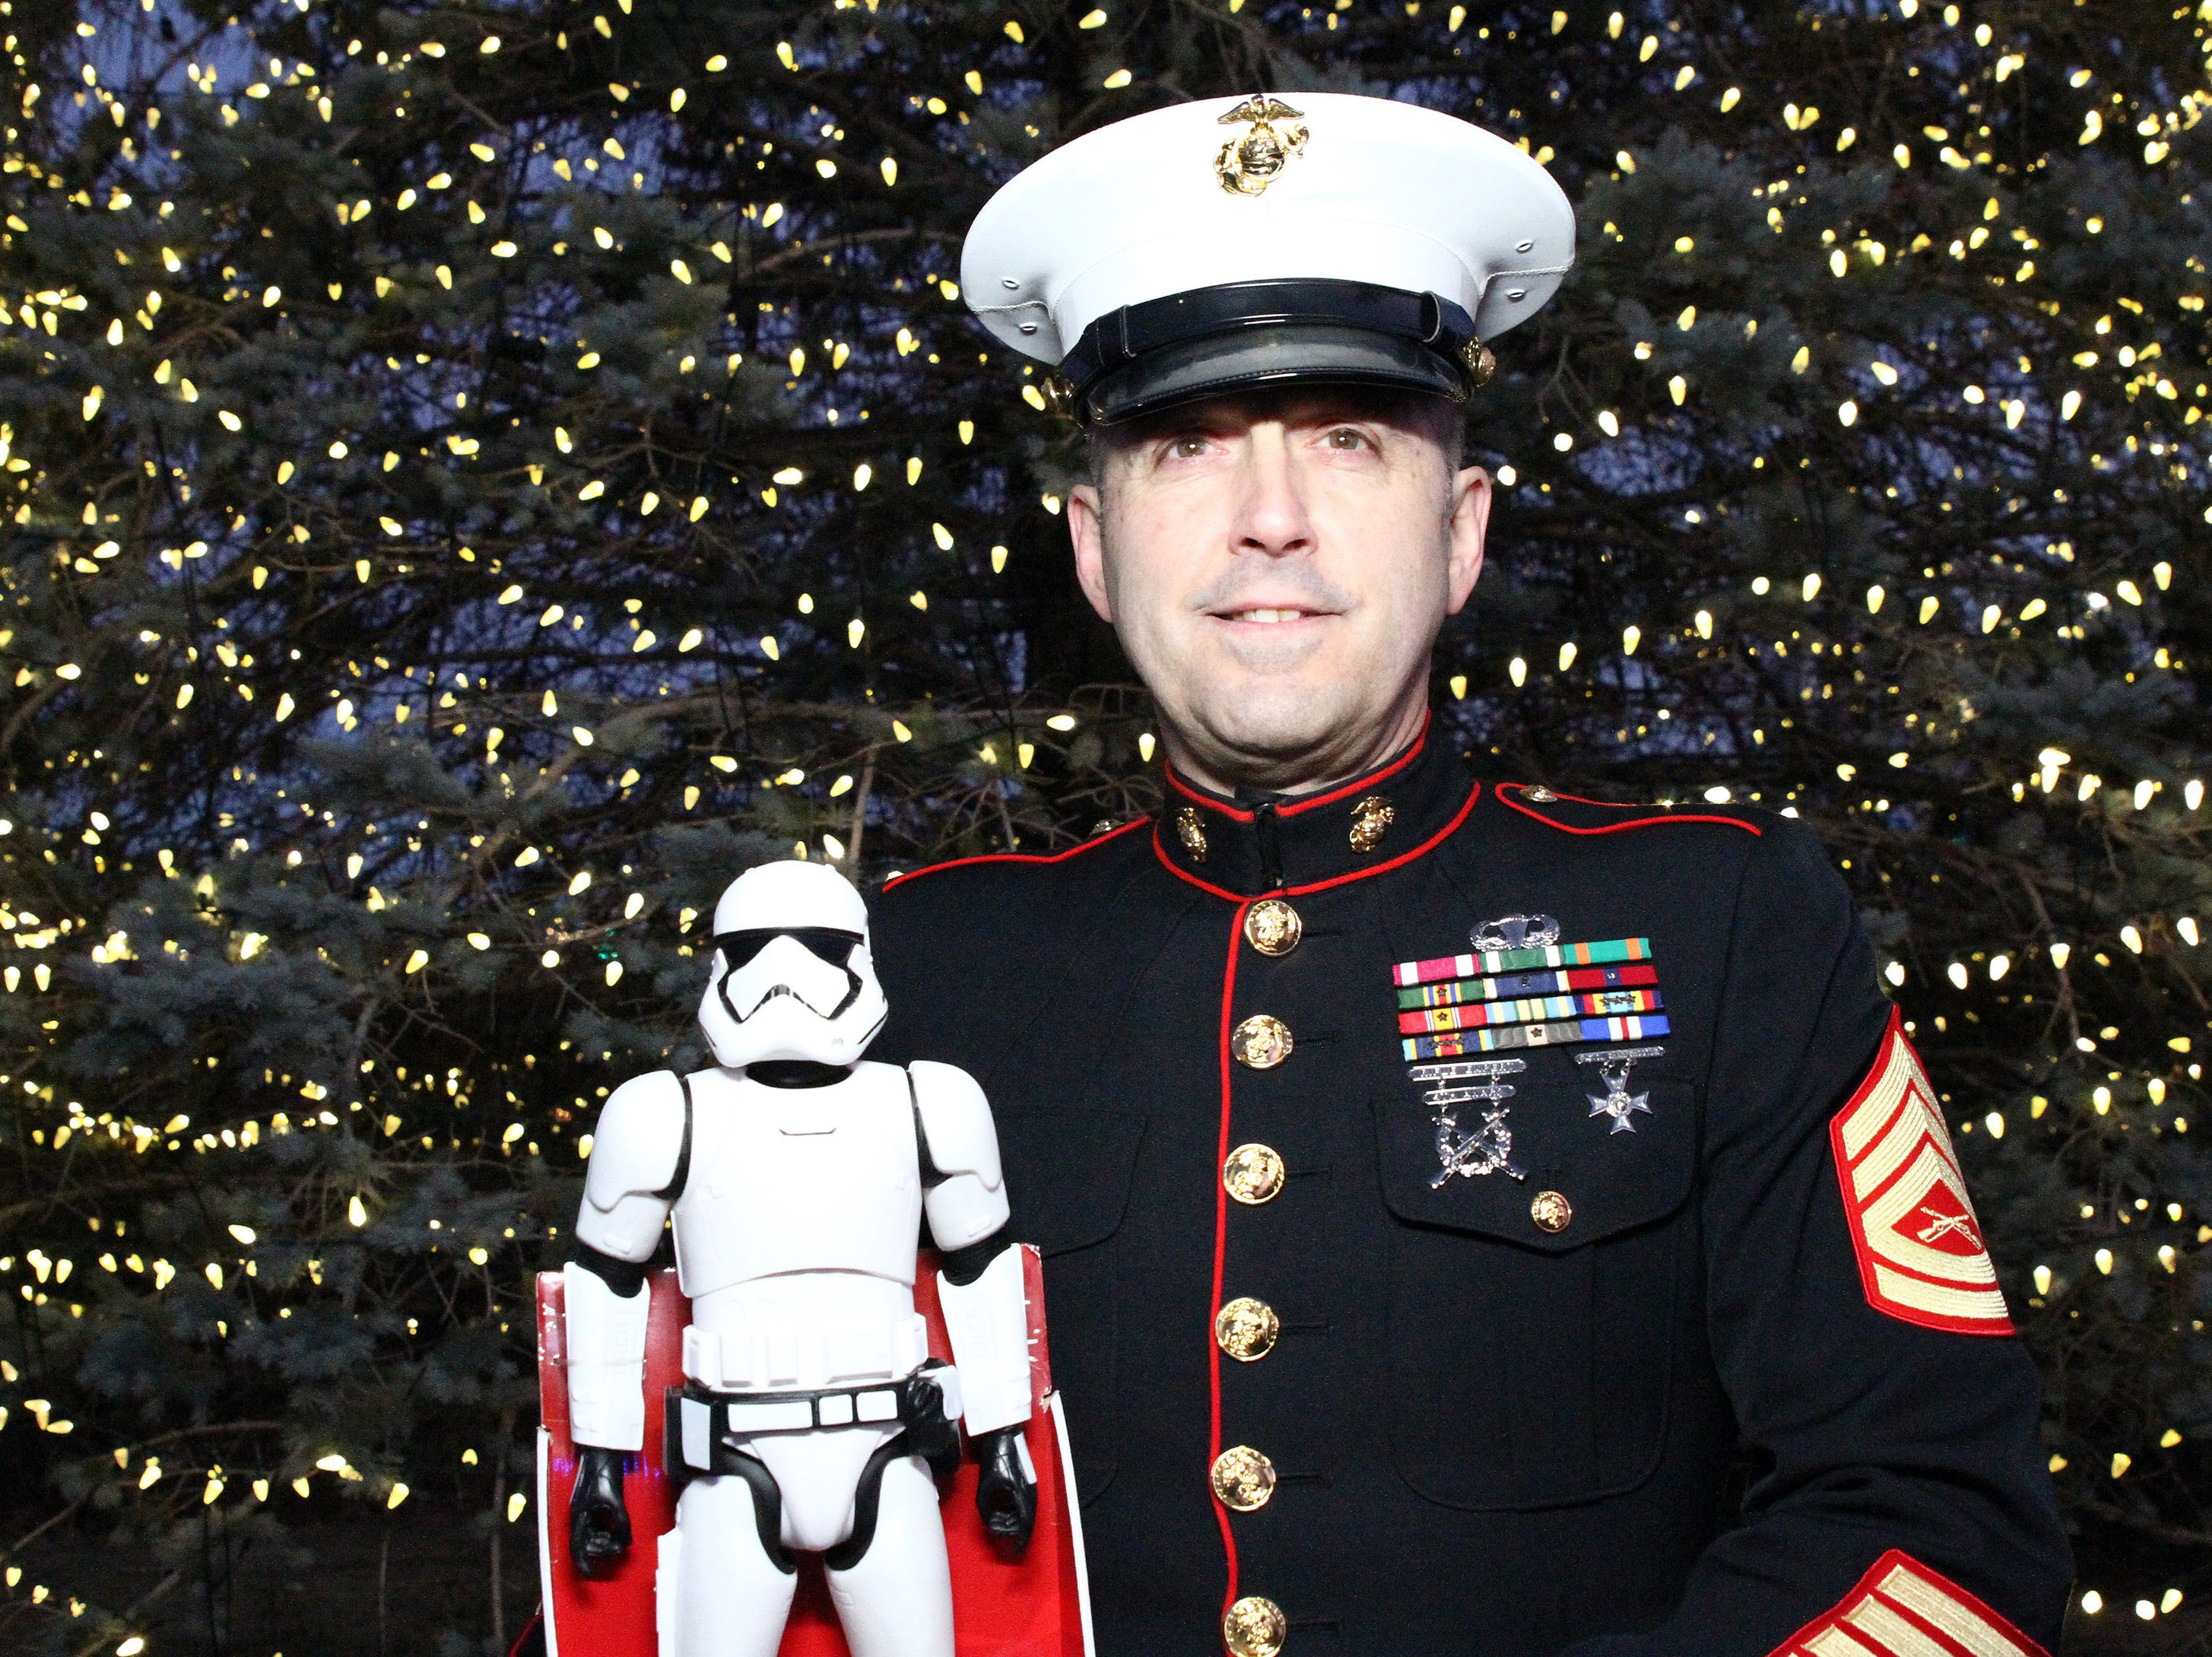 Retired Marine Gunnery Sgt. Mark Amann, current member of the Ankeny Fire Department, holds a stormtrooper toy by the giant tree as gifts are dropped off at Ankeny's fill the truck day during the U.S. Marine Corps Toys for Tots campaign at the Ankeny Fire Station Headquarters on Sunday, Dec. 16, 2018.